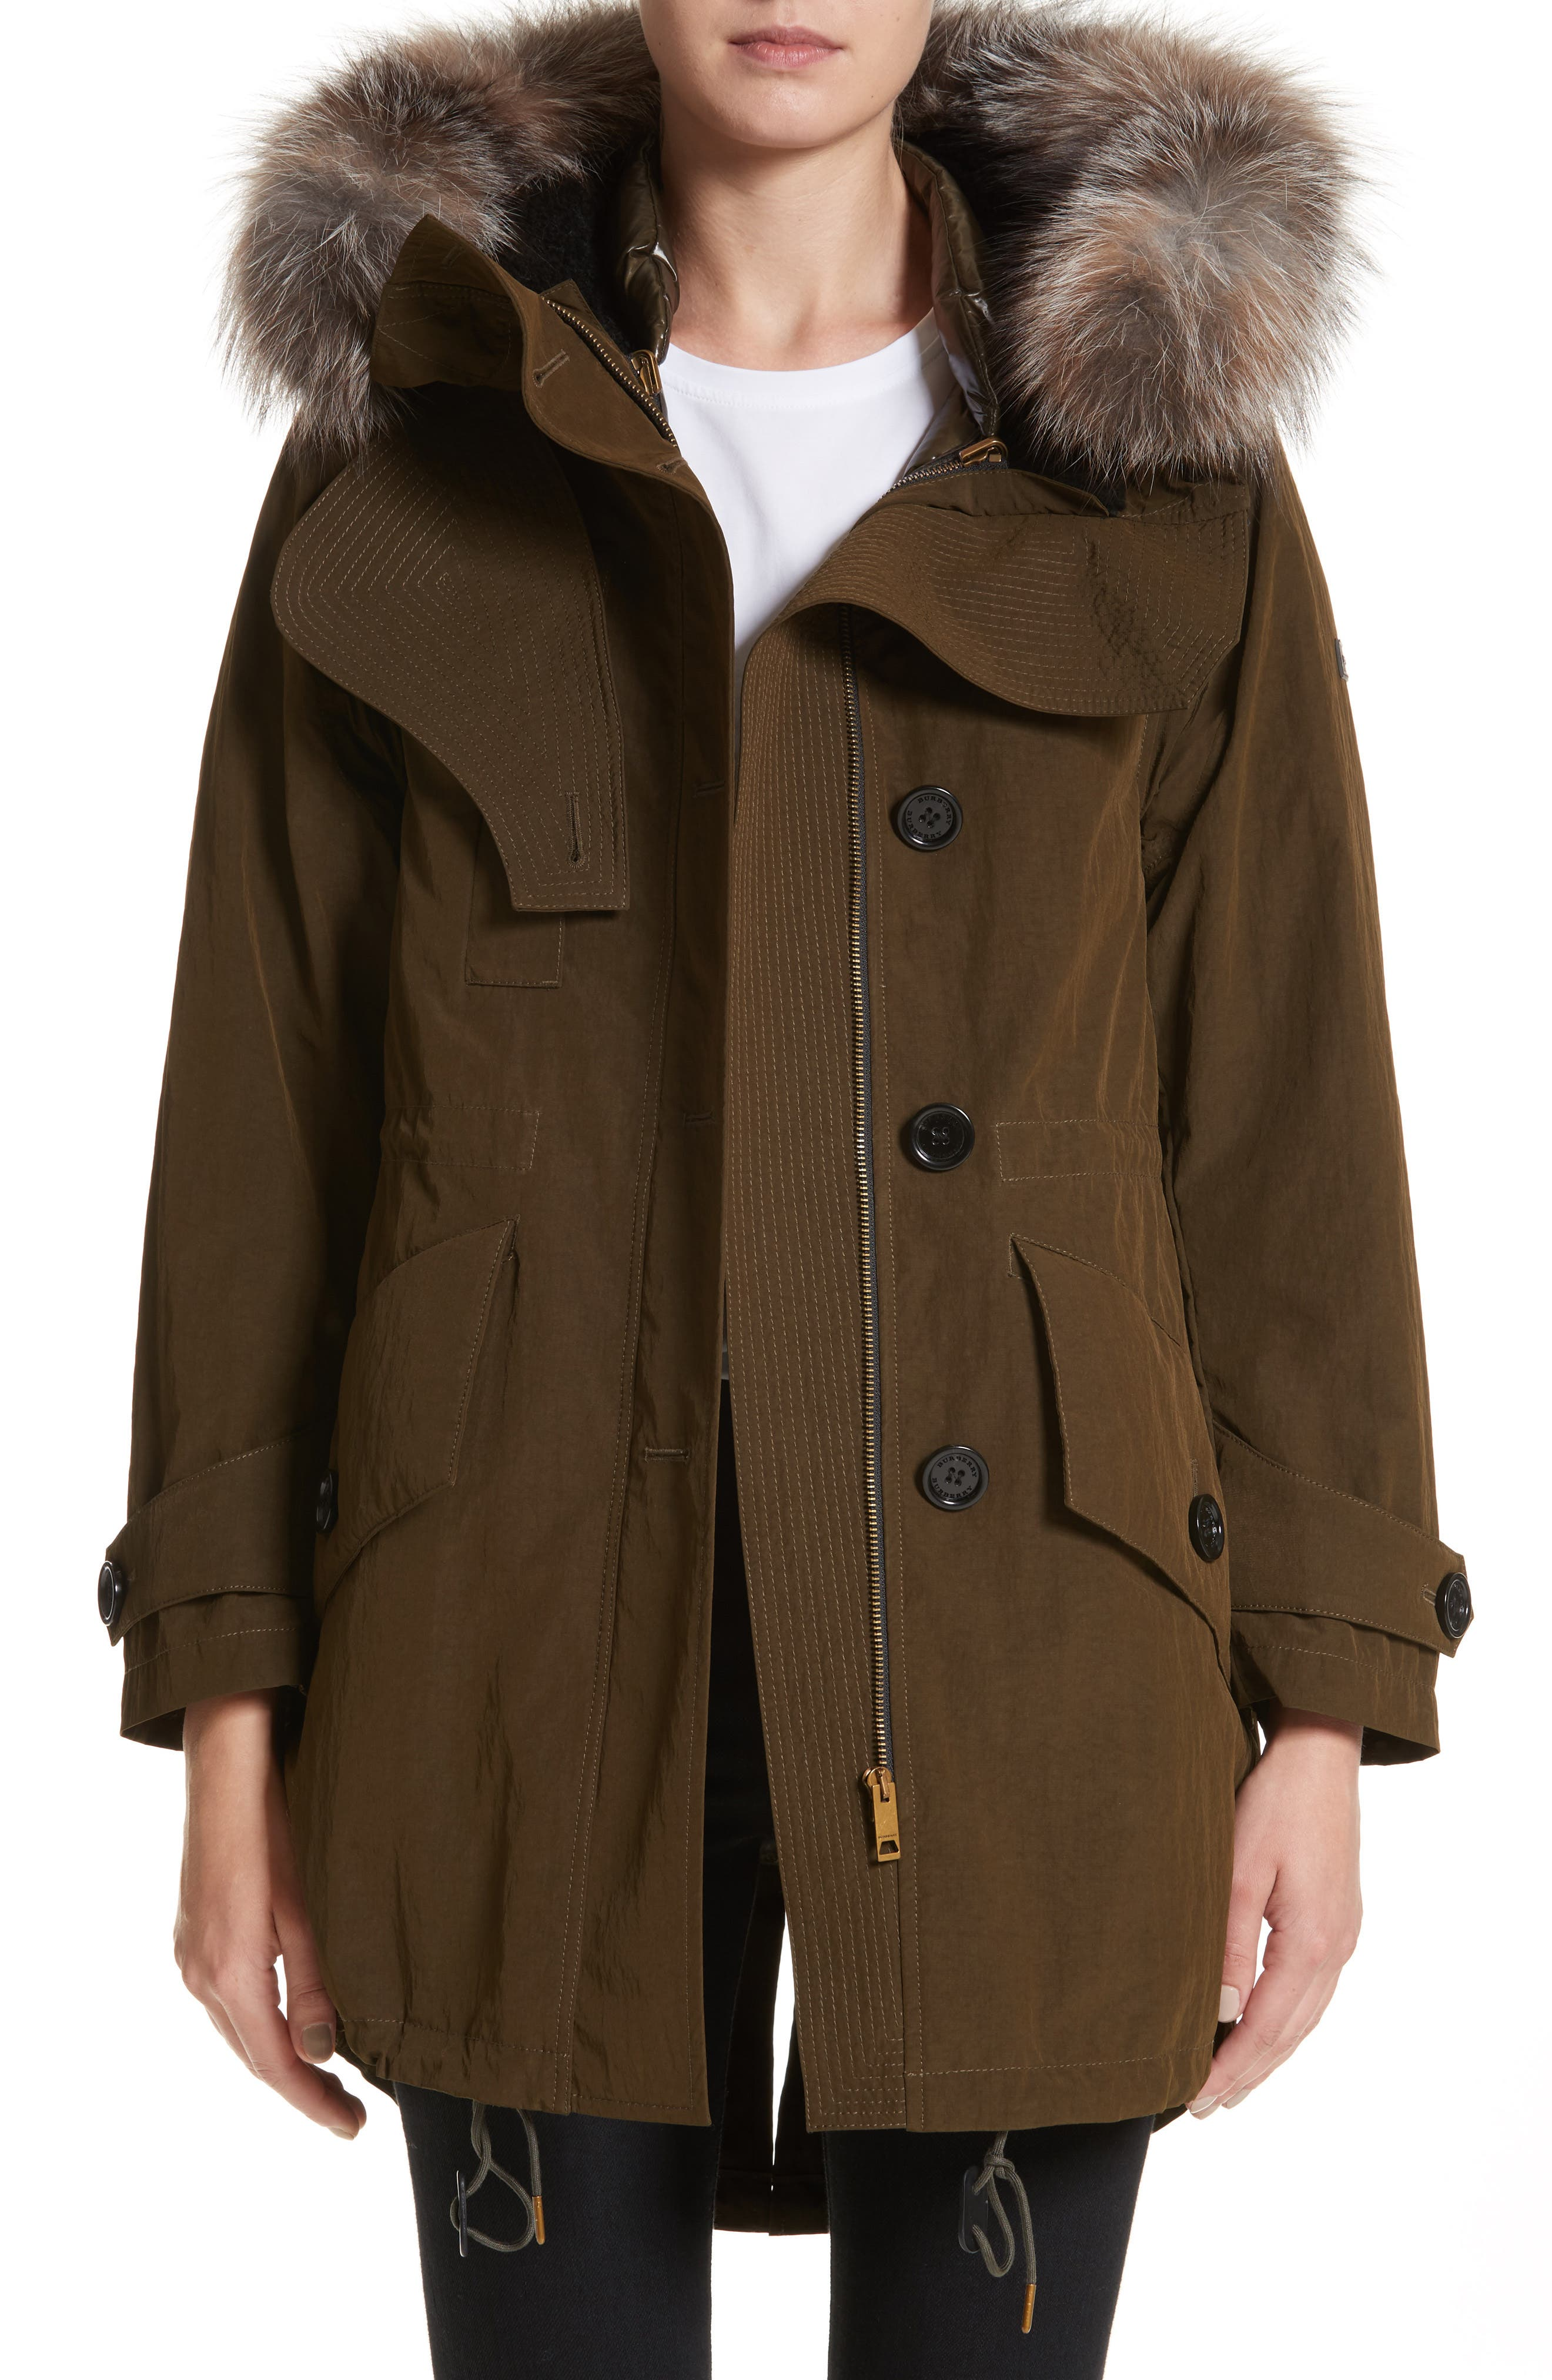 Ramsford 3-in-1 Hooded Parka with Genuine Fox Fur & Genuine Shearling Trim,                             Main thumbnail 1, color,                             301